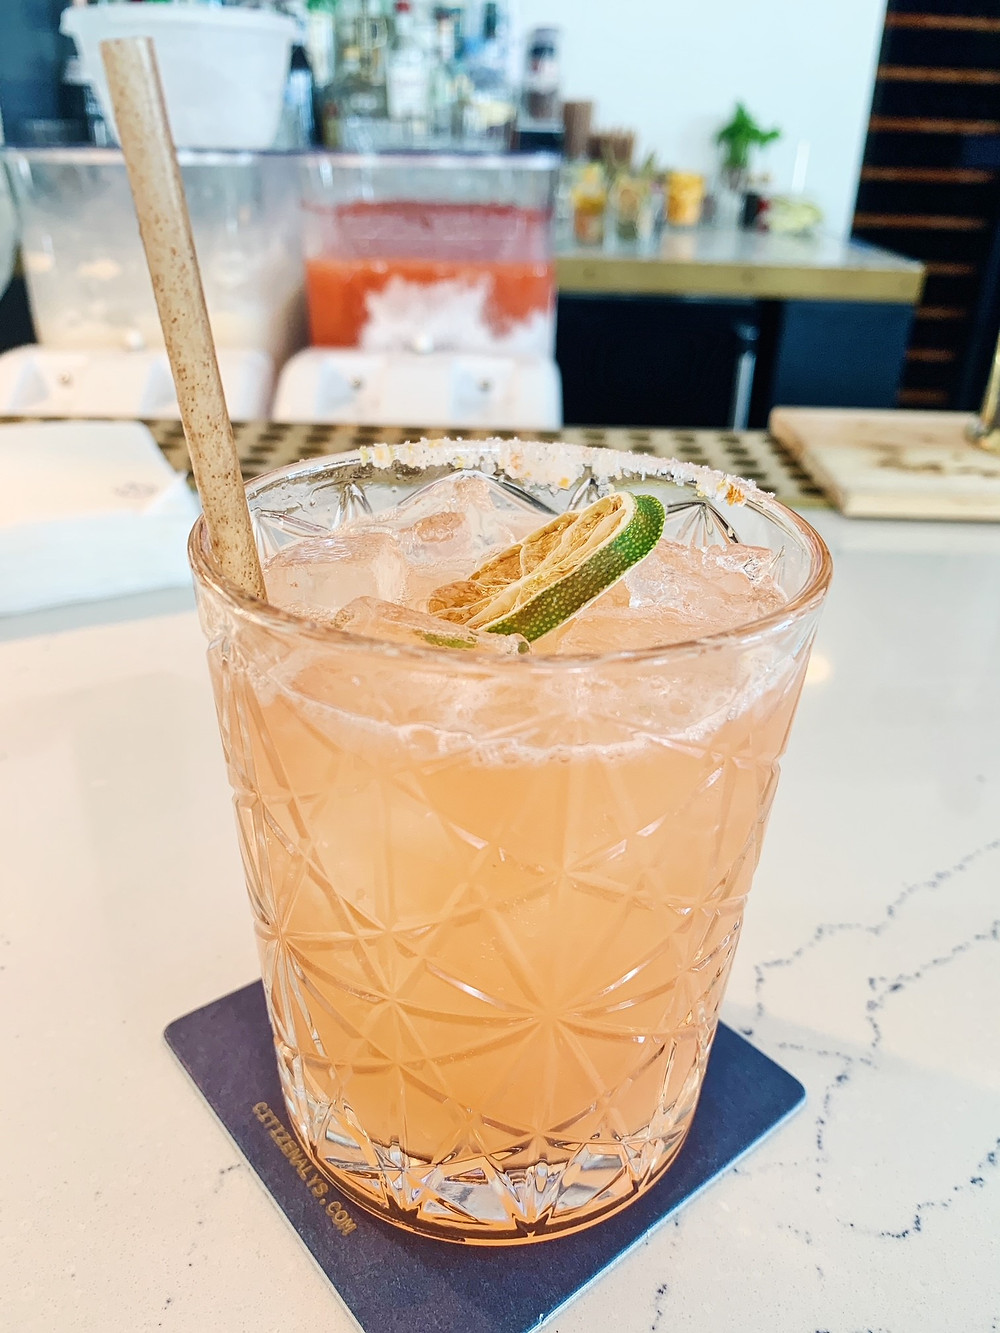 The Zest is History cocktail - The Citizen